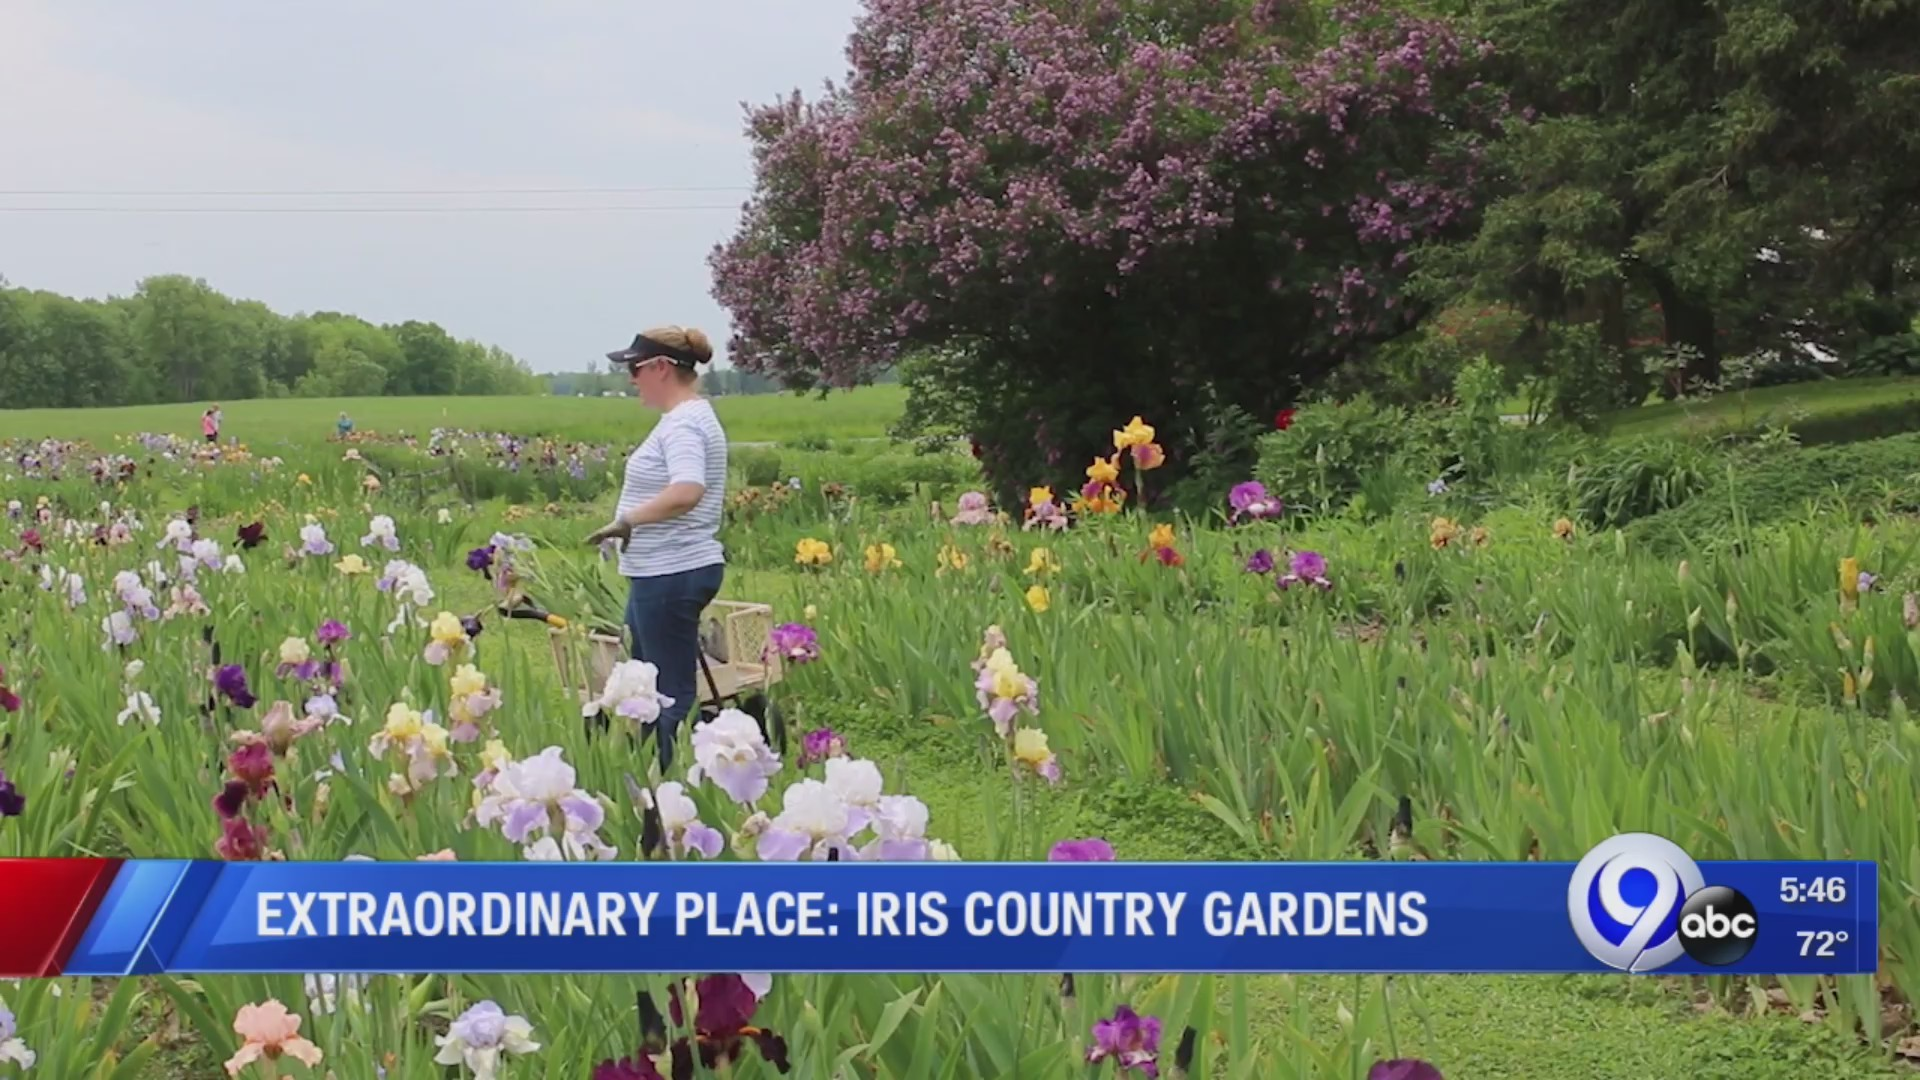 Iris_Country_Gardens__Extraordinary_Plac_0_20190606220251